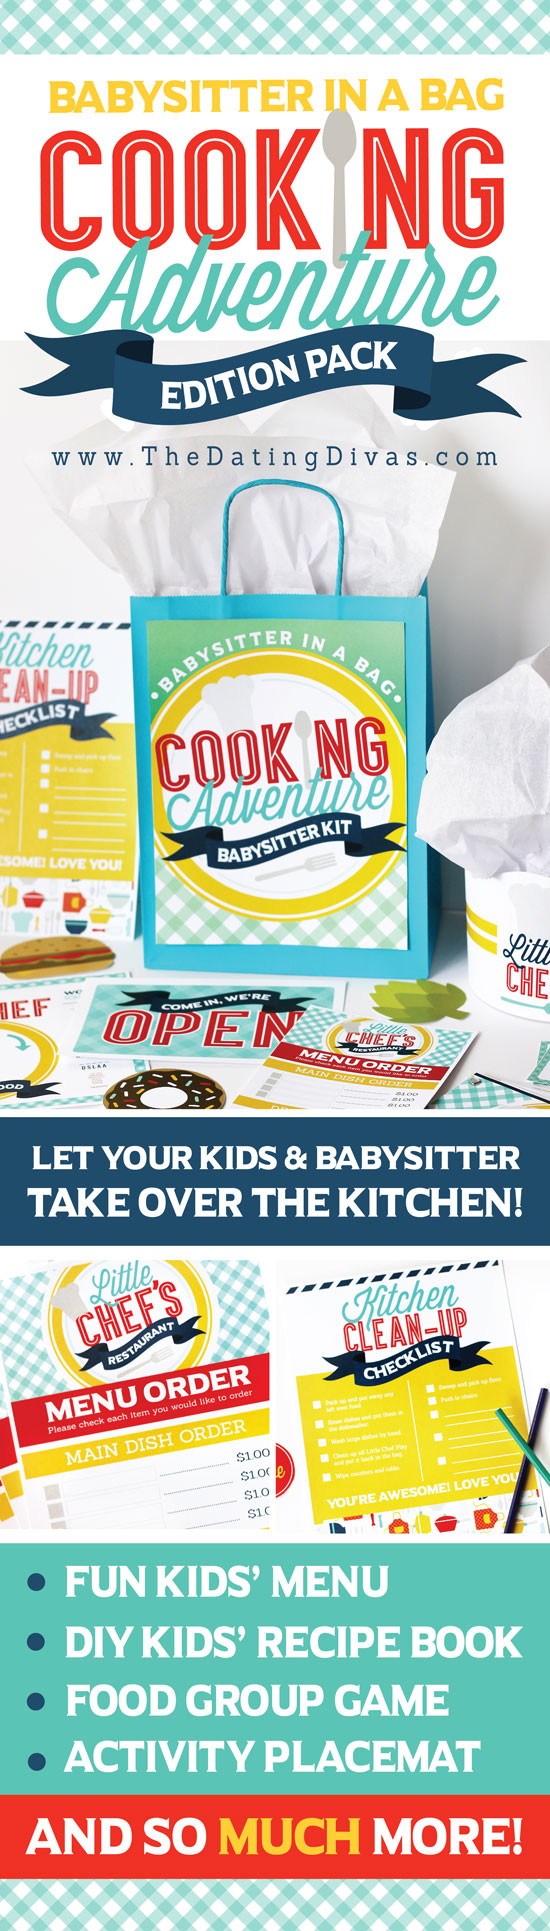 Babysitter in a Bag Cooking with Kids